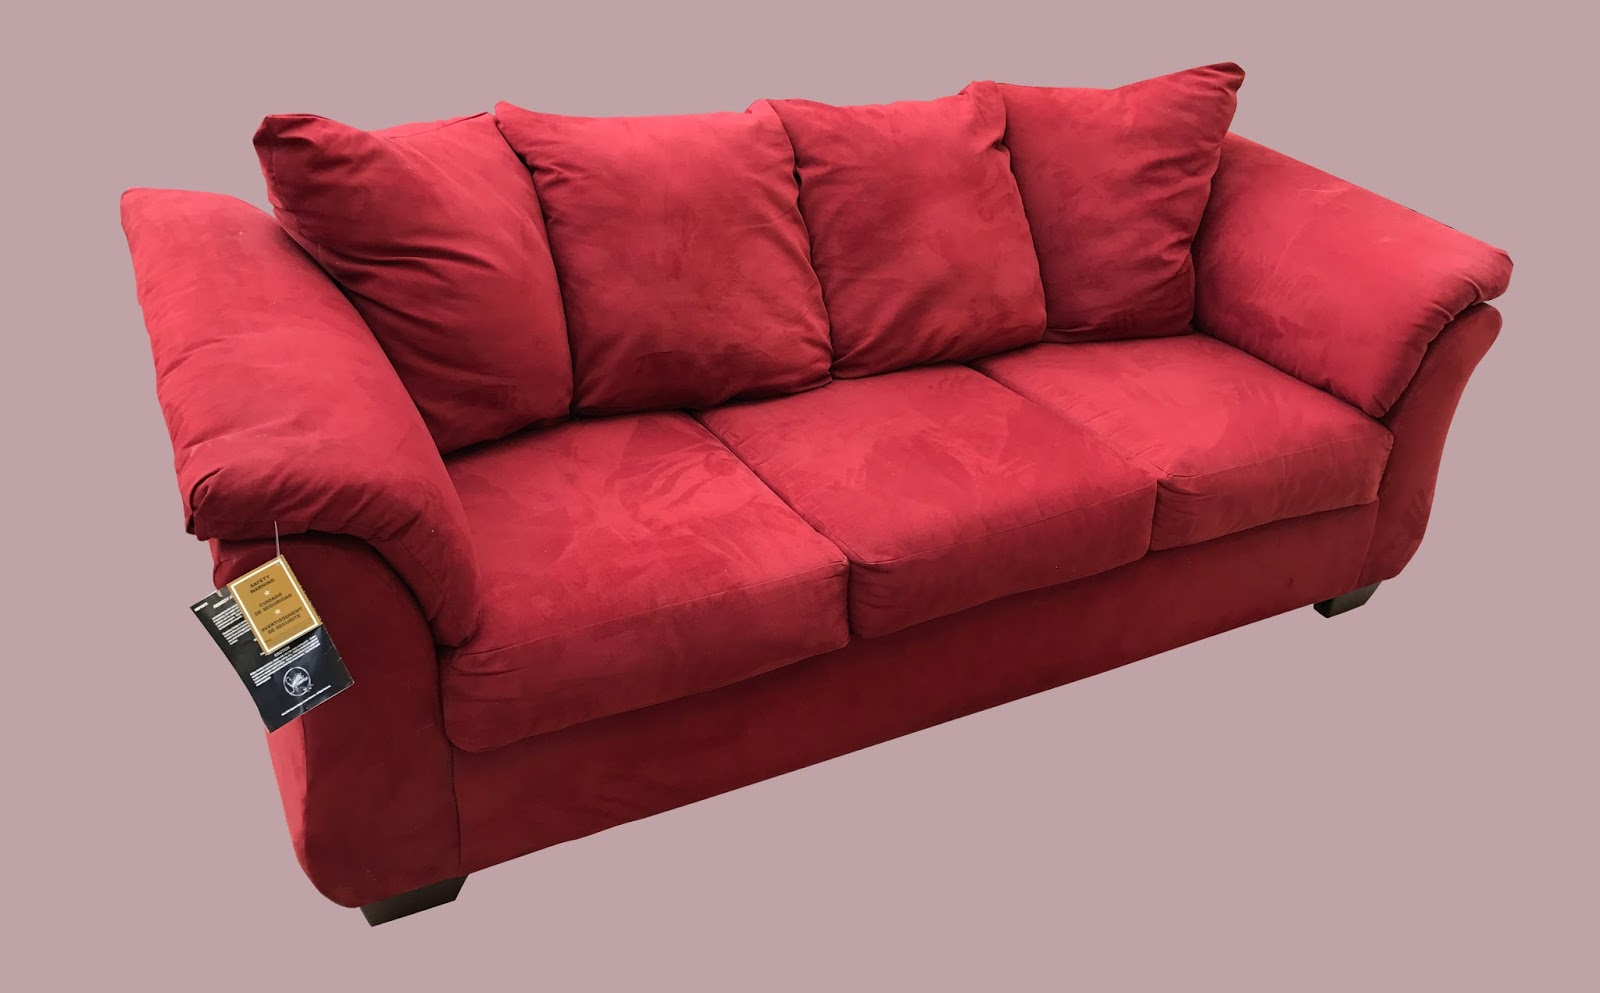 Red Microfiber Reclining Sofa Brown Leather Sectional Clearance Uhuru Furniture And Collectibles 195